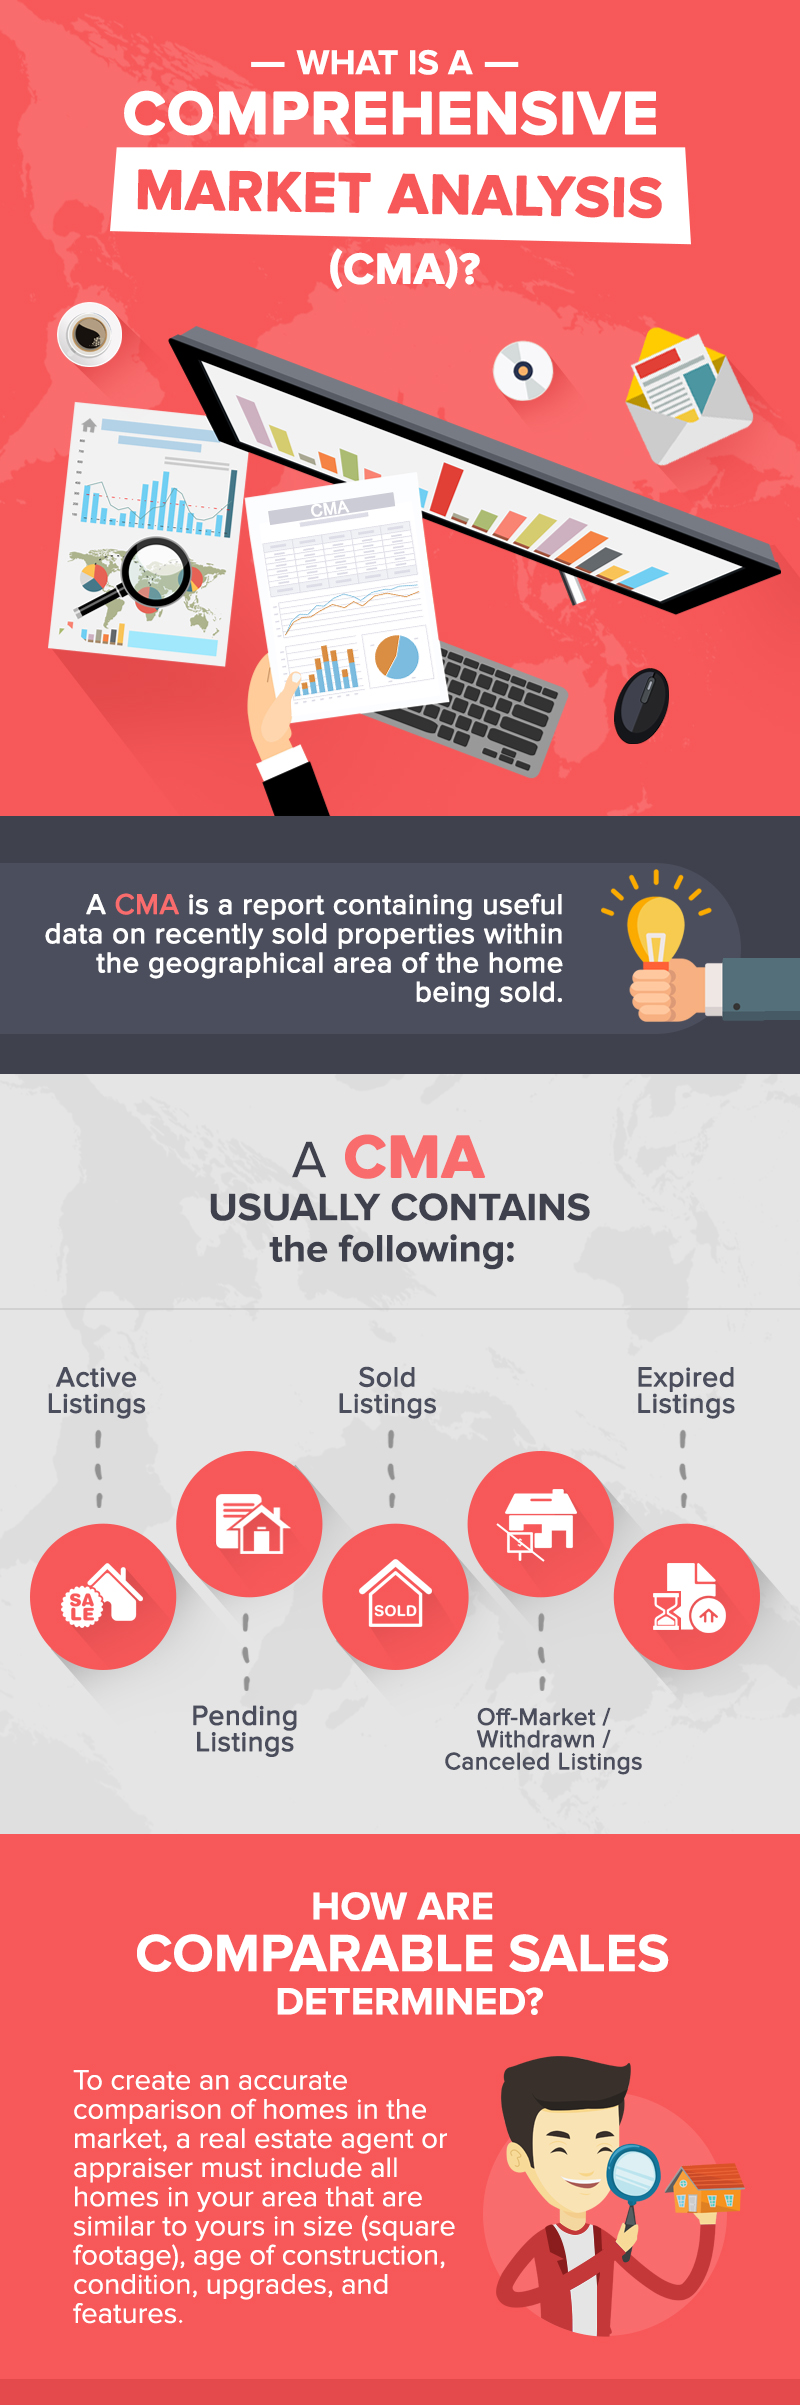 What Is A Comparative Market Analysis And How Can It Help You Sell Your Home?